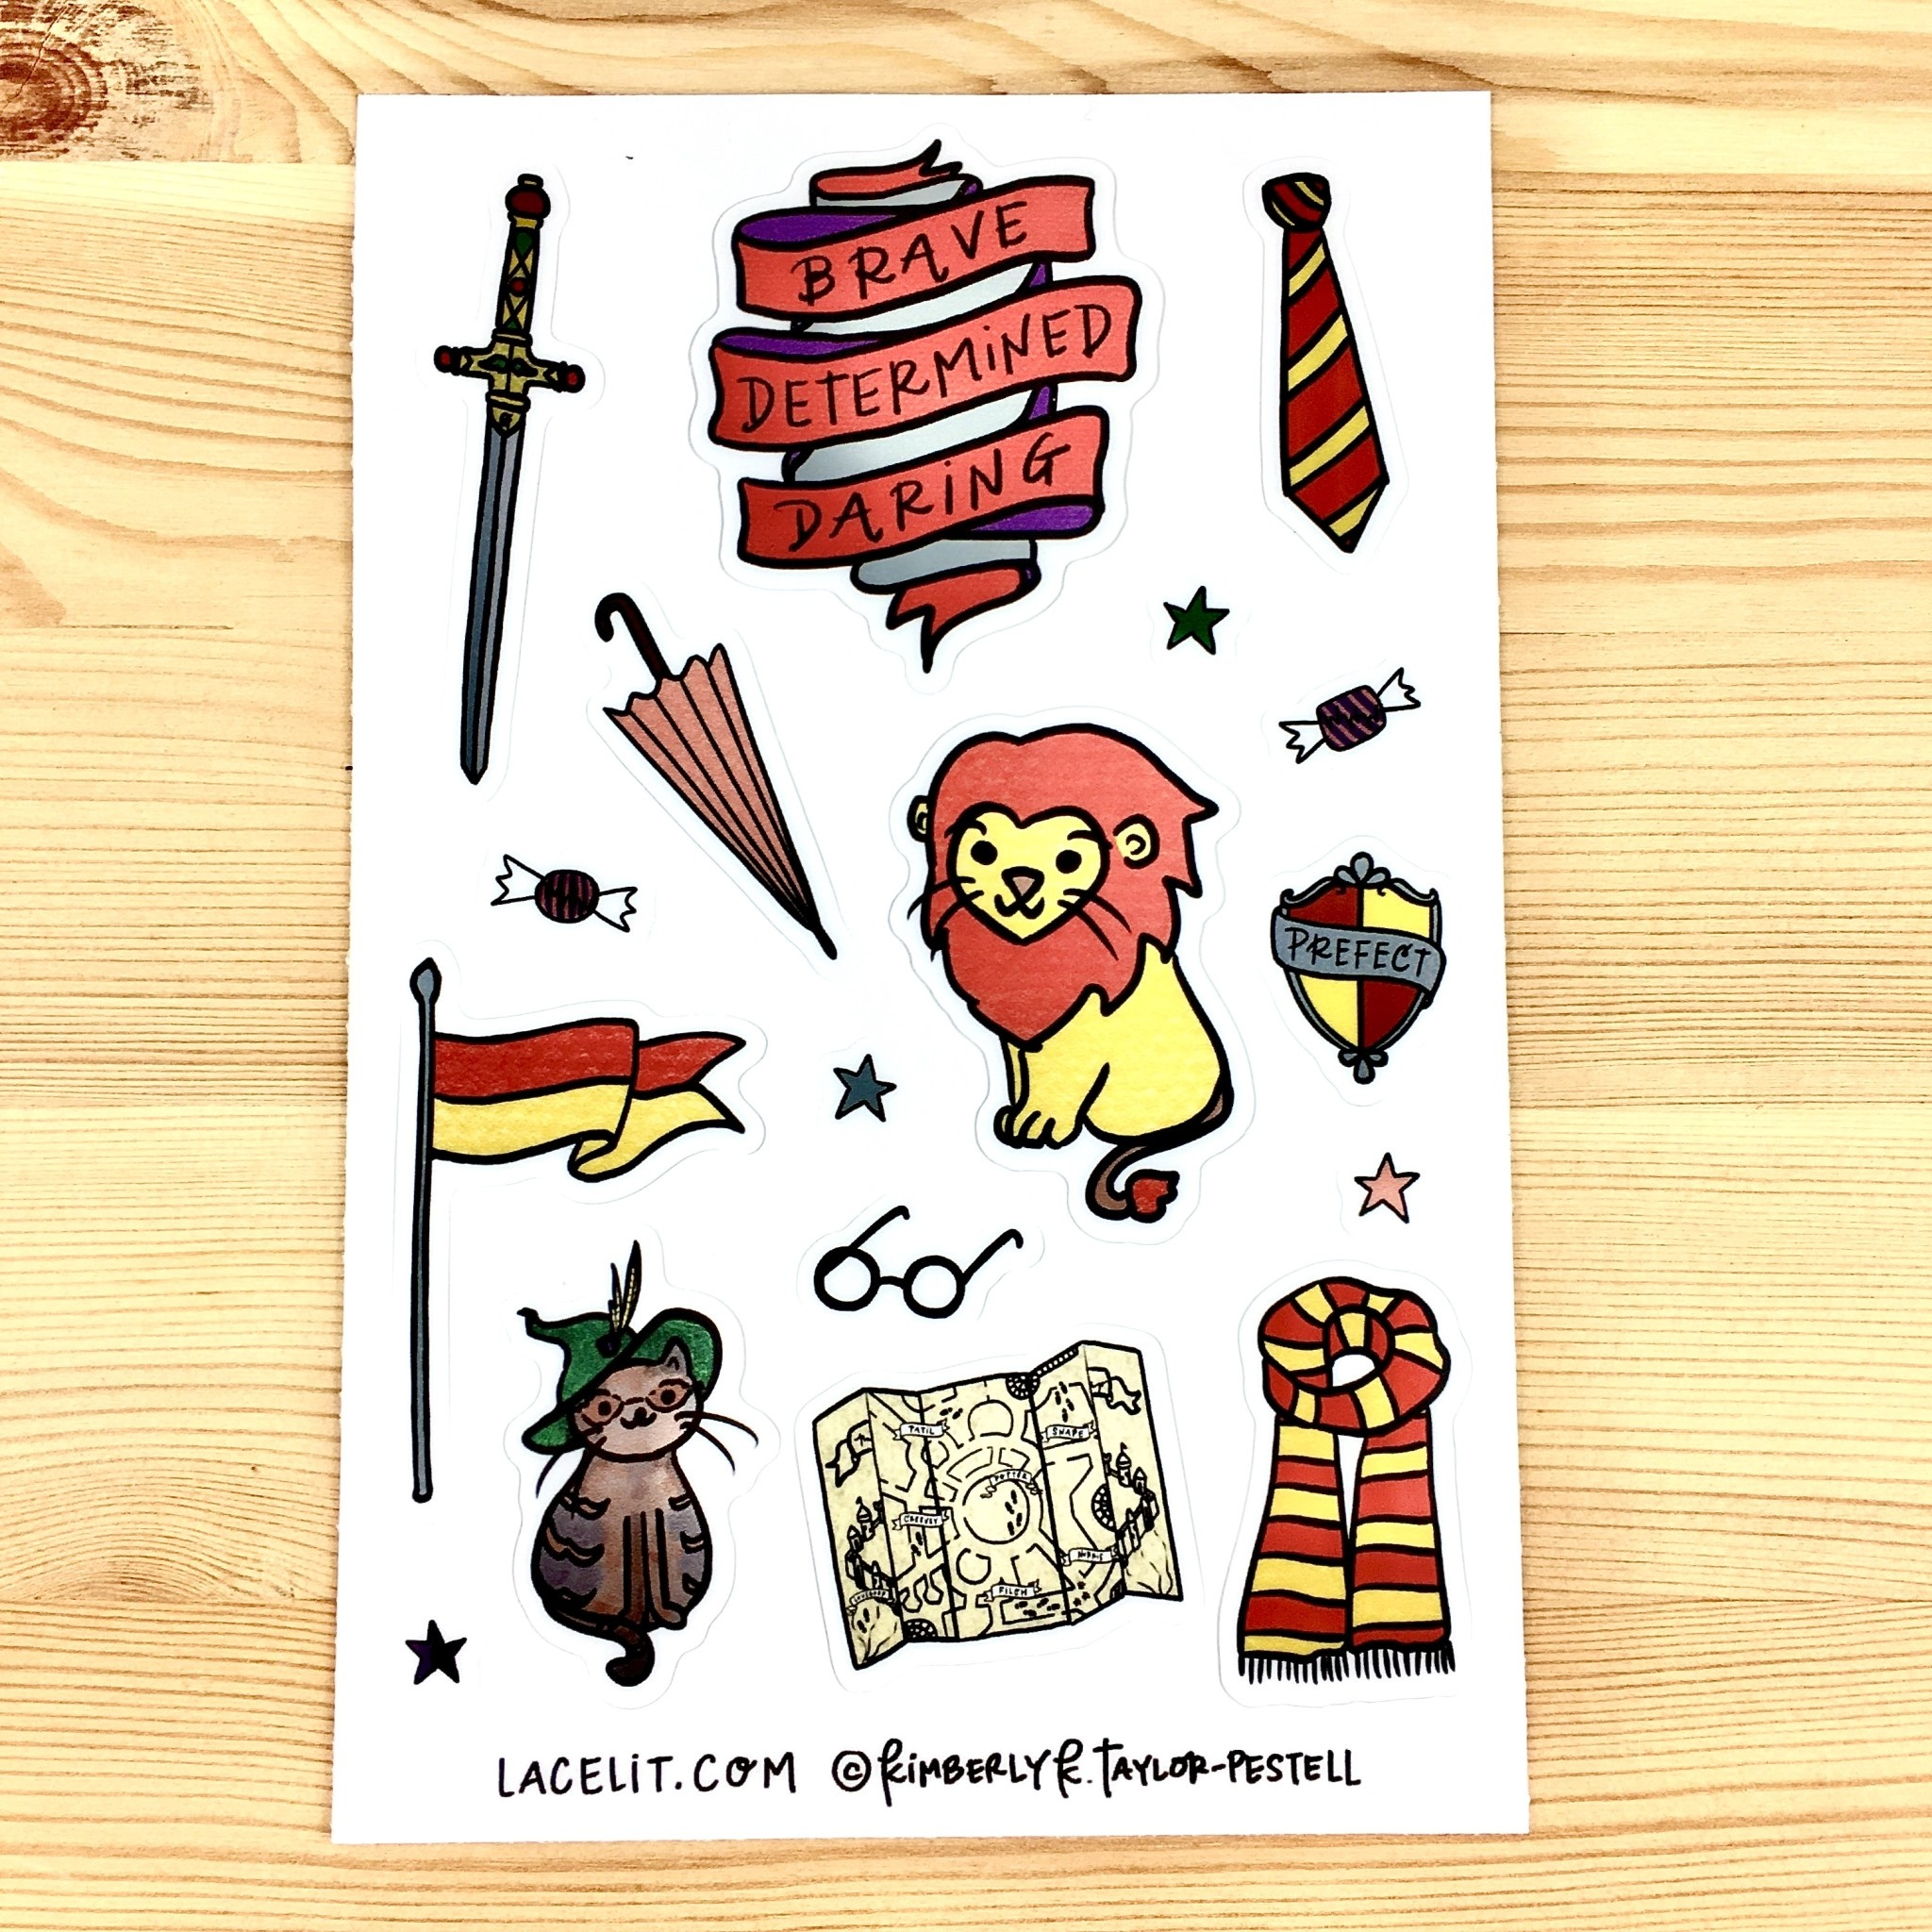 Lacelit Gryffinhouse Vinyl Sticker Sheet